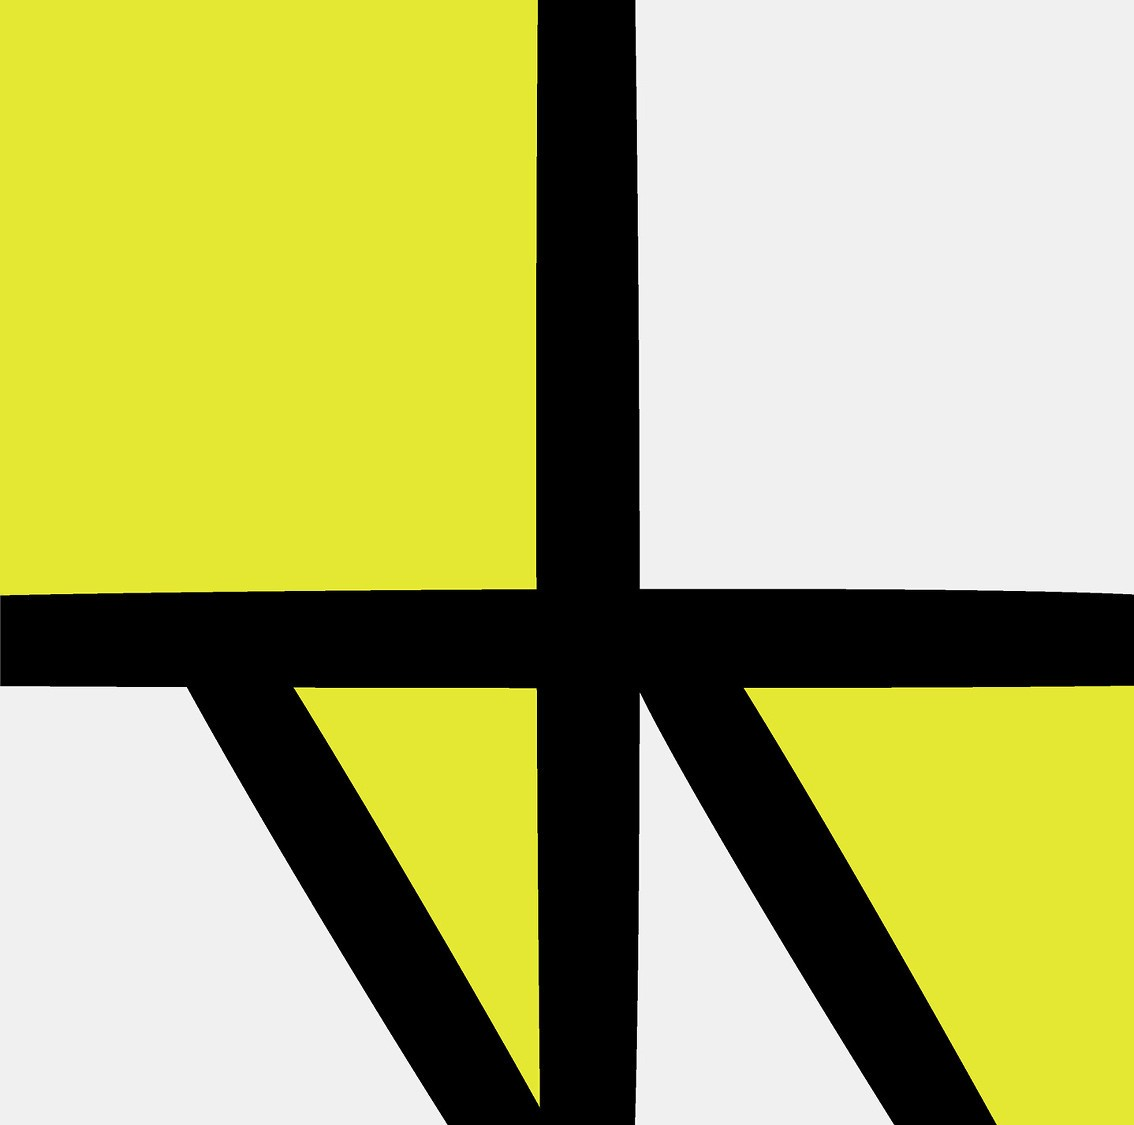 New Order announces first single - 'Restless' - taken from forthcoming album 'Music Complete' - listen now, the old school sound is back!